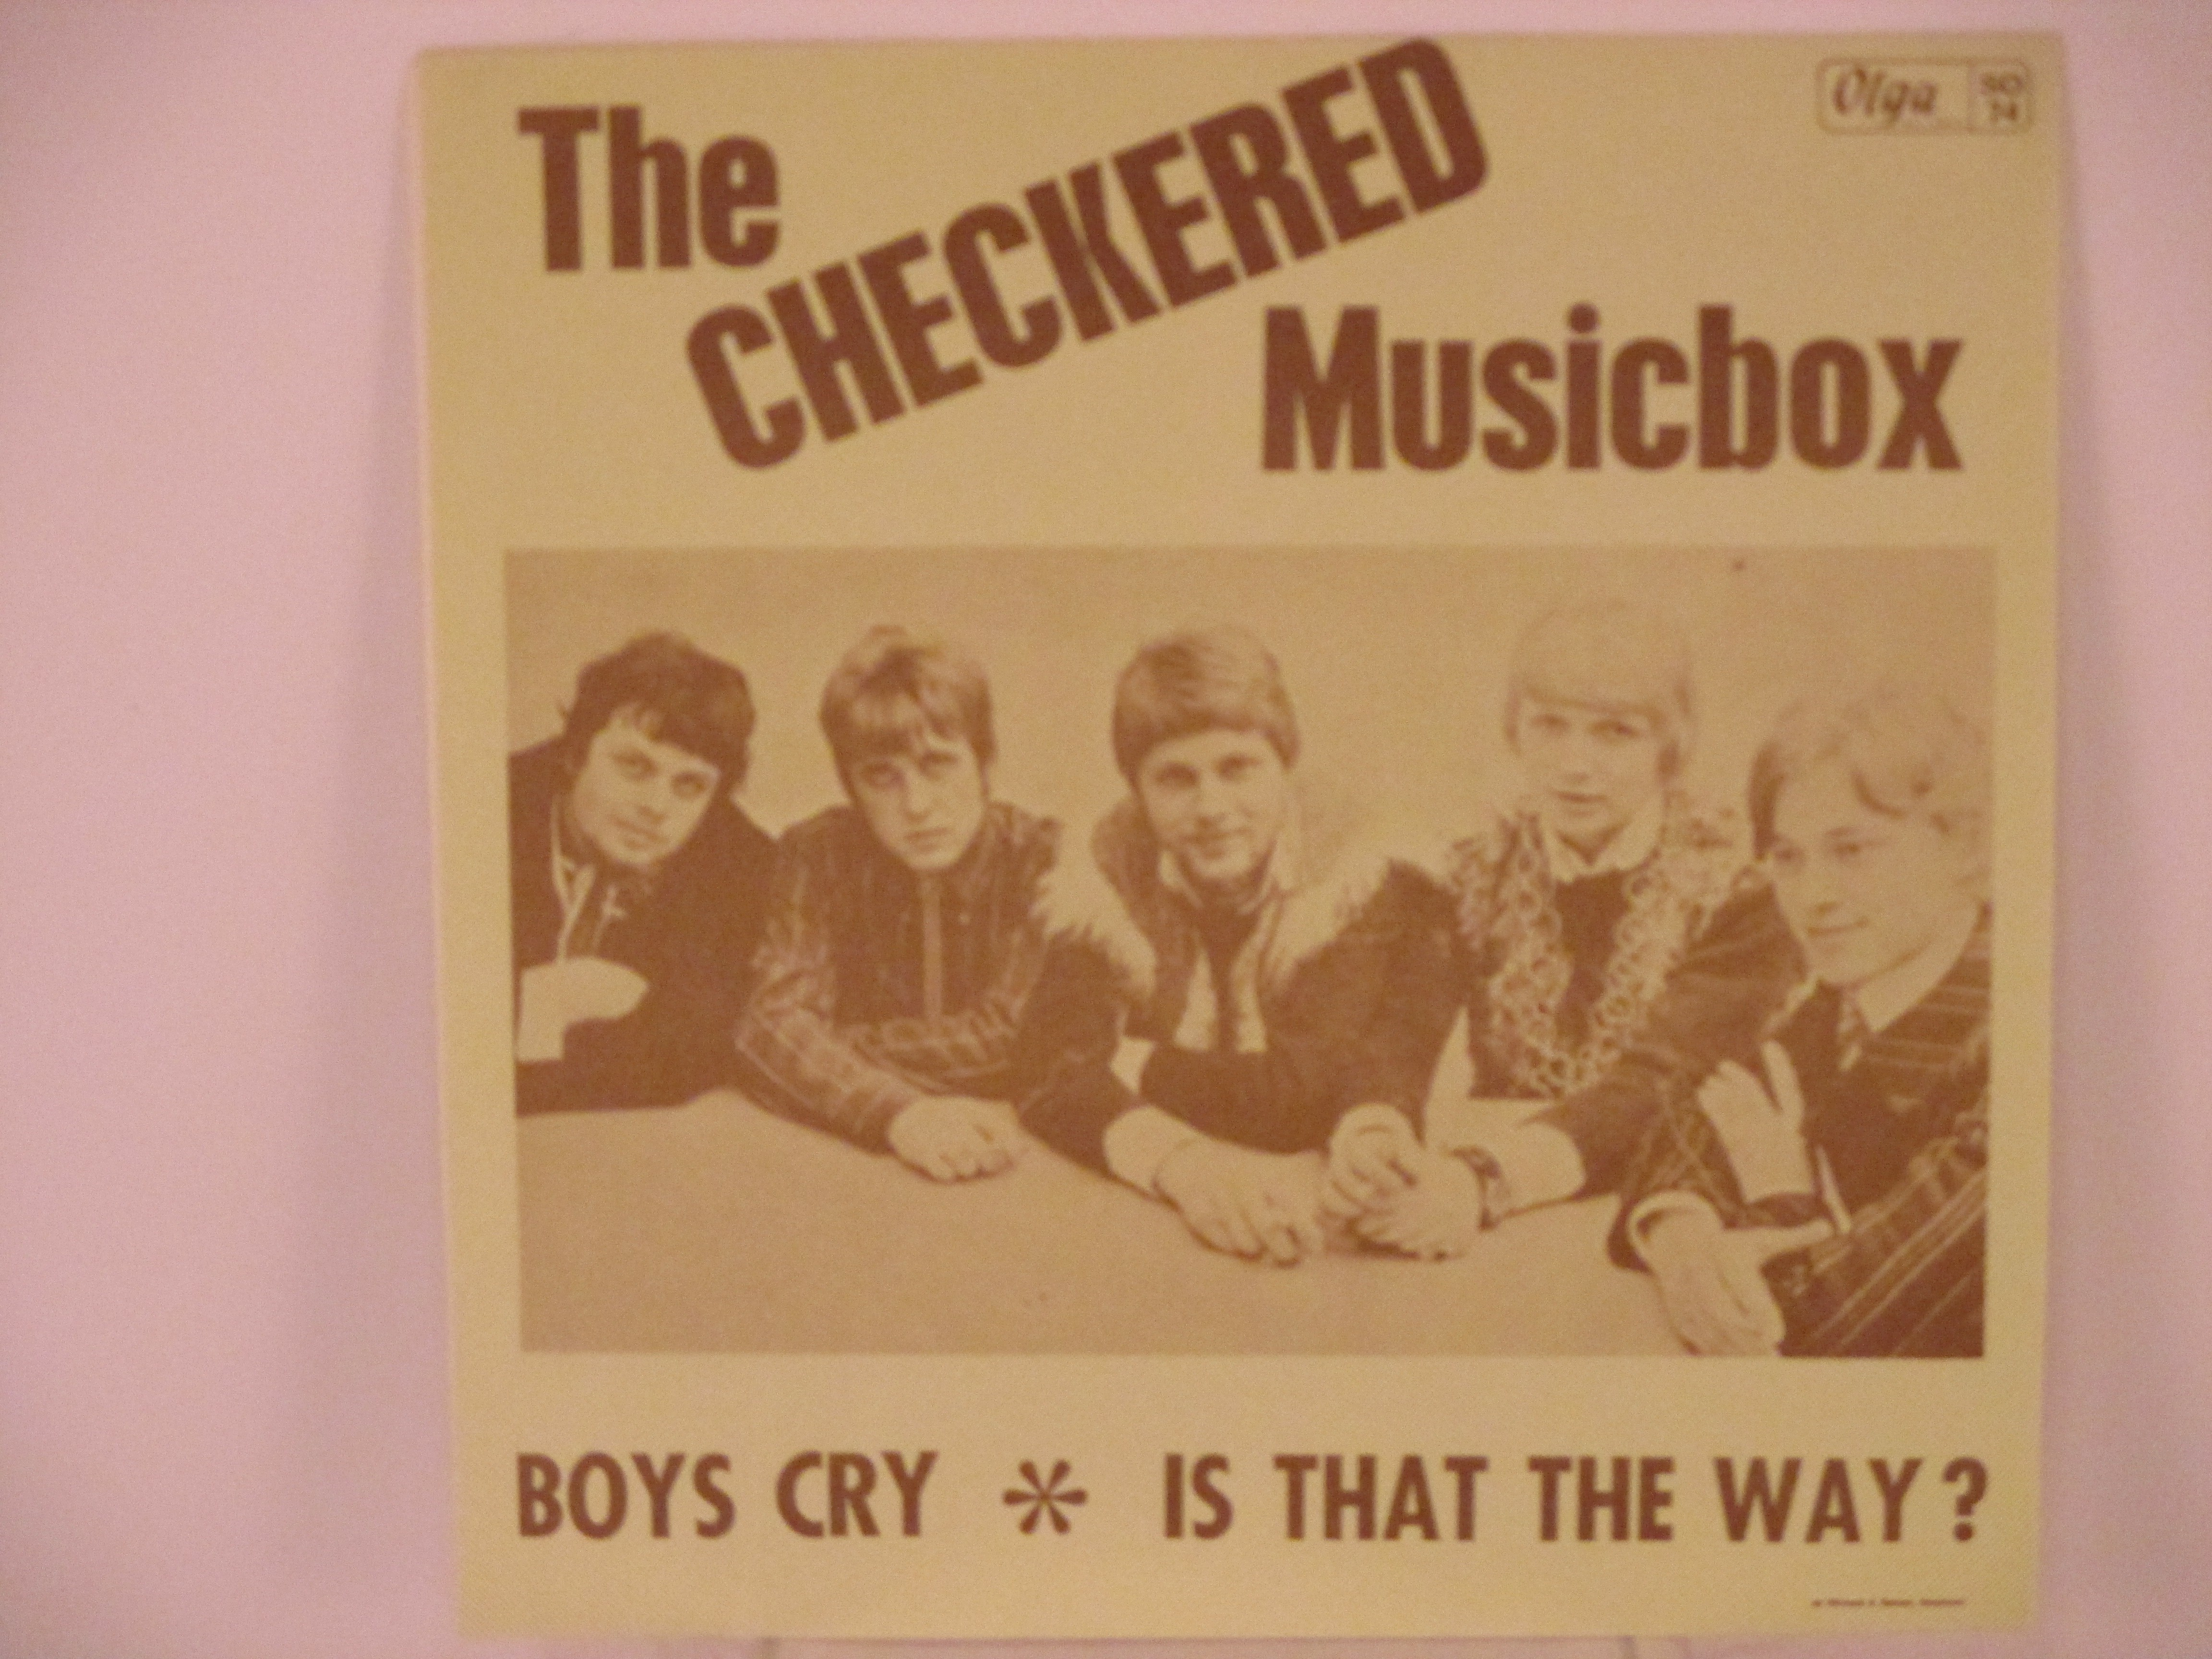 CHECKERED MUSICBOX : Boys cry / Is that the way?